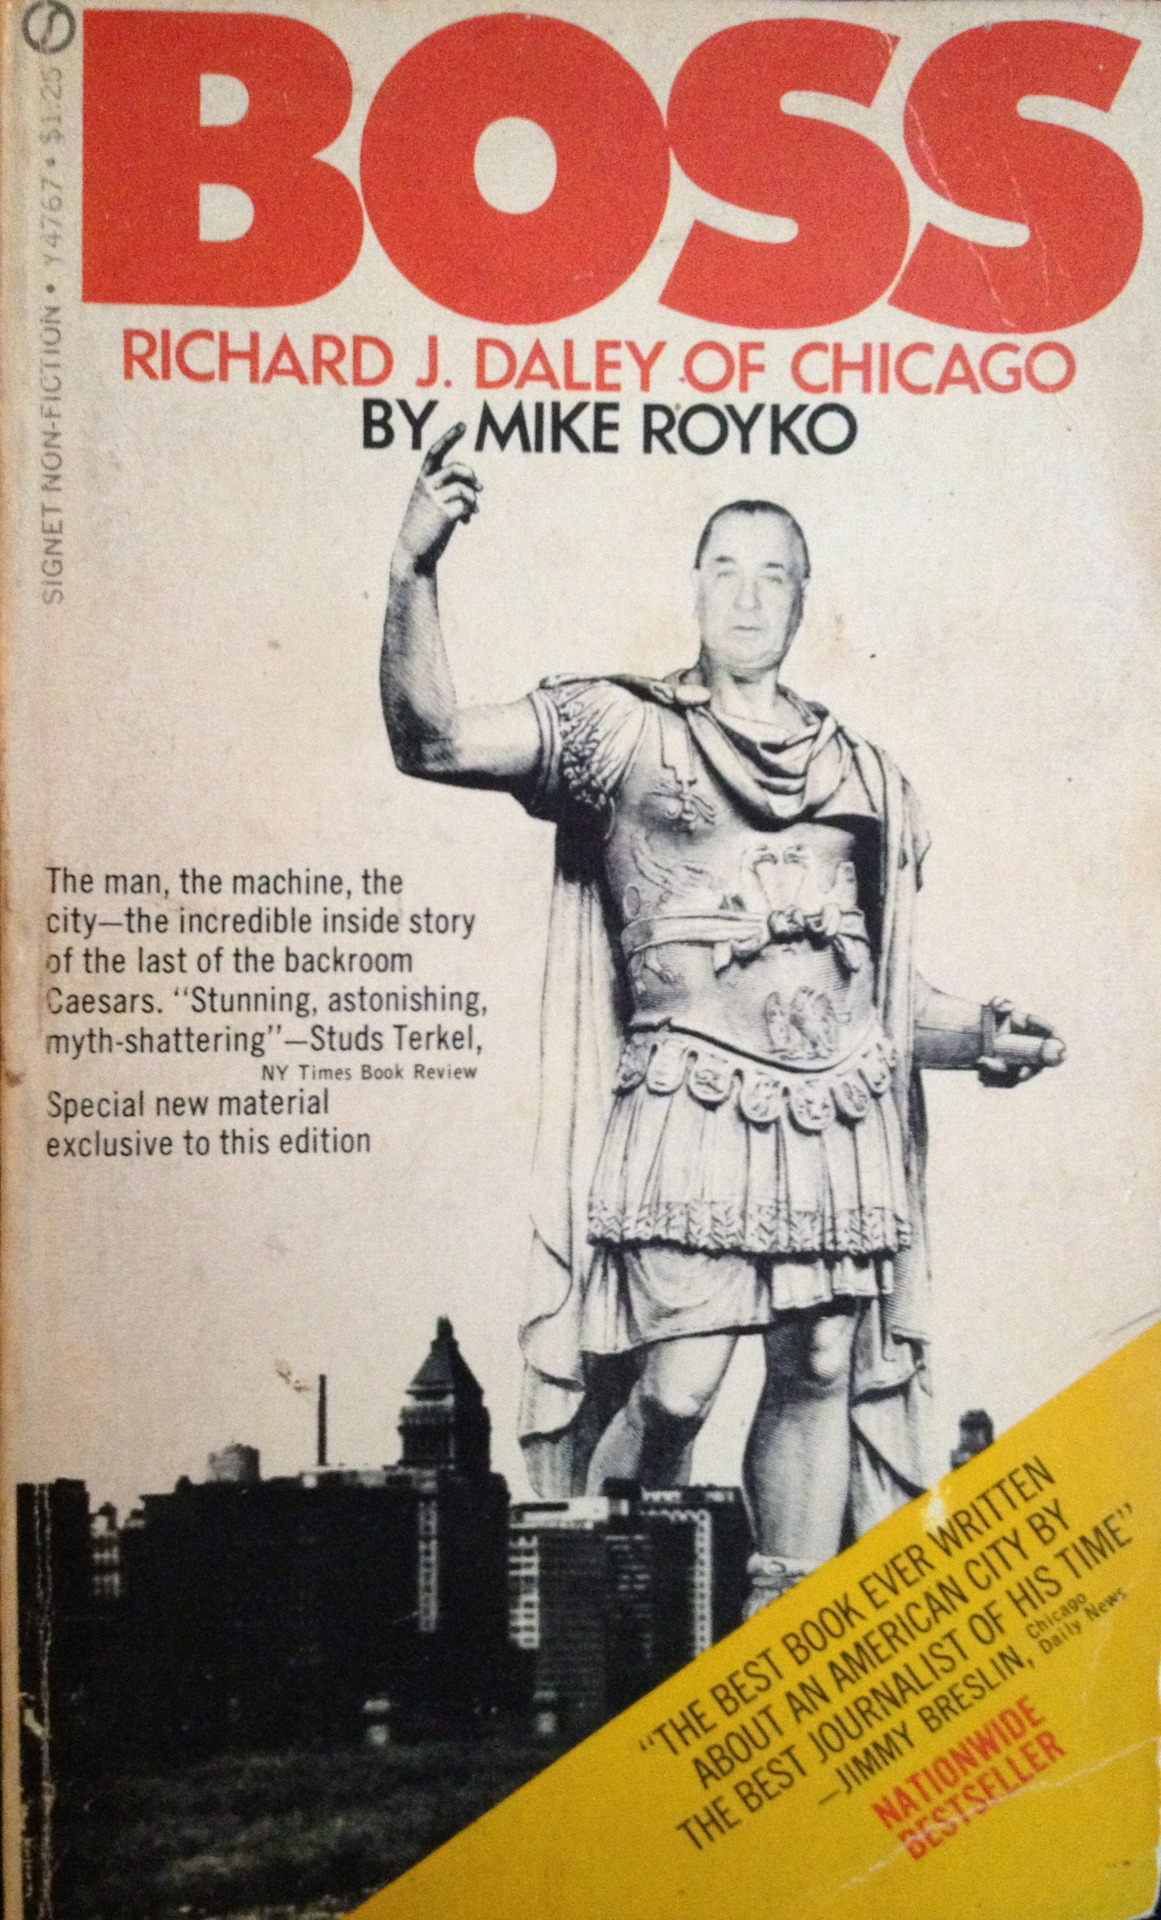 The newspaper columnist Mike Royko wrote this detailed portrait of Mayor Richard J. Daley, the head of the 1960s Democratic machine in Chicago, in 1971. I can't remember when or where I first acquired it, but at some point I lost my copy. Then my wife found another one buried on a bookshelf at her mother's house. I'm glad she did. The book is part indictment, part admiring profile, of the mayor and  the corrupt city that raised him and how it all spun out of control with the police brutality against protesters at the 1968 Democratic Convention. Here's a description of the notoriously corrupt Police Department of the Daley era: Not everybody was on the take. There were honest policemen. You could find them working in the crime laboratory, the radio lab, in desk jobs in headquarters. There were college-educated policemen, and you could find them working with juveniles. There were even rebelliously honest policemen, who might blow the whistle on the dishonest ones. You could find them walking a patrol along the edge of a cemetery. The honest policemen were distinguished by their rank, which was seldom above patrolman. They were problems, square pegs in round holes. Nobody wanted to work in a traffic car with an honest partner. He was useless on a vice detail because he might start arresting gamblers or hookers. So the honest ones were isolated and did the nonprofitable jobs. It had to be so, because a few good apples in the barrel could ruin the thousands of rotten ones.   [Originally posted on my discontinued This Old Book Tumblr.]